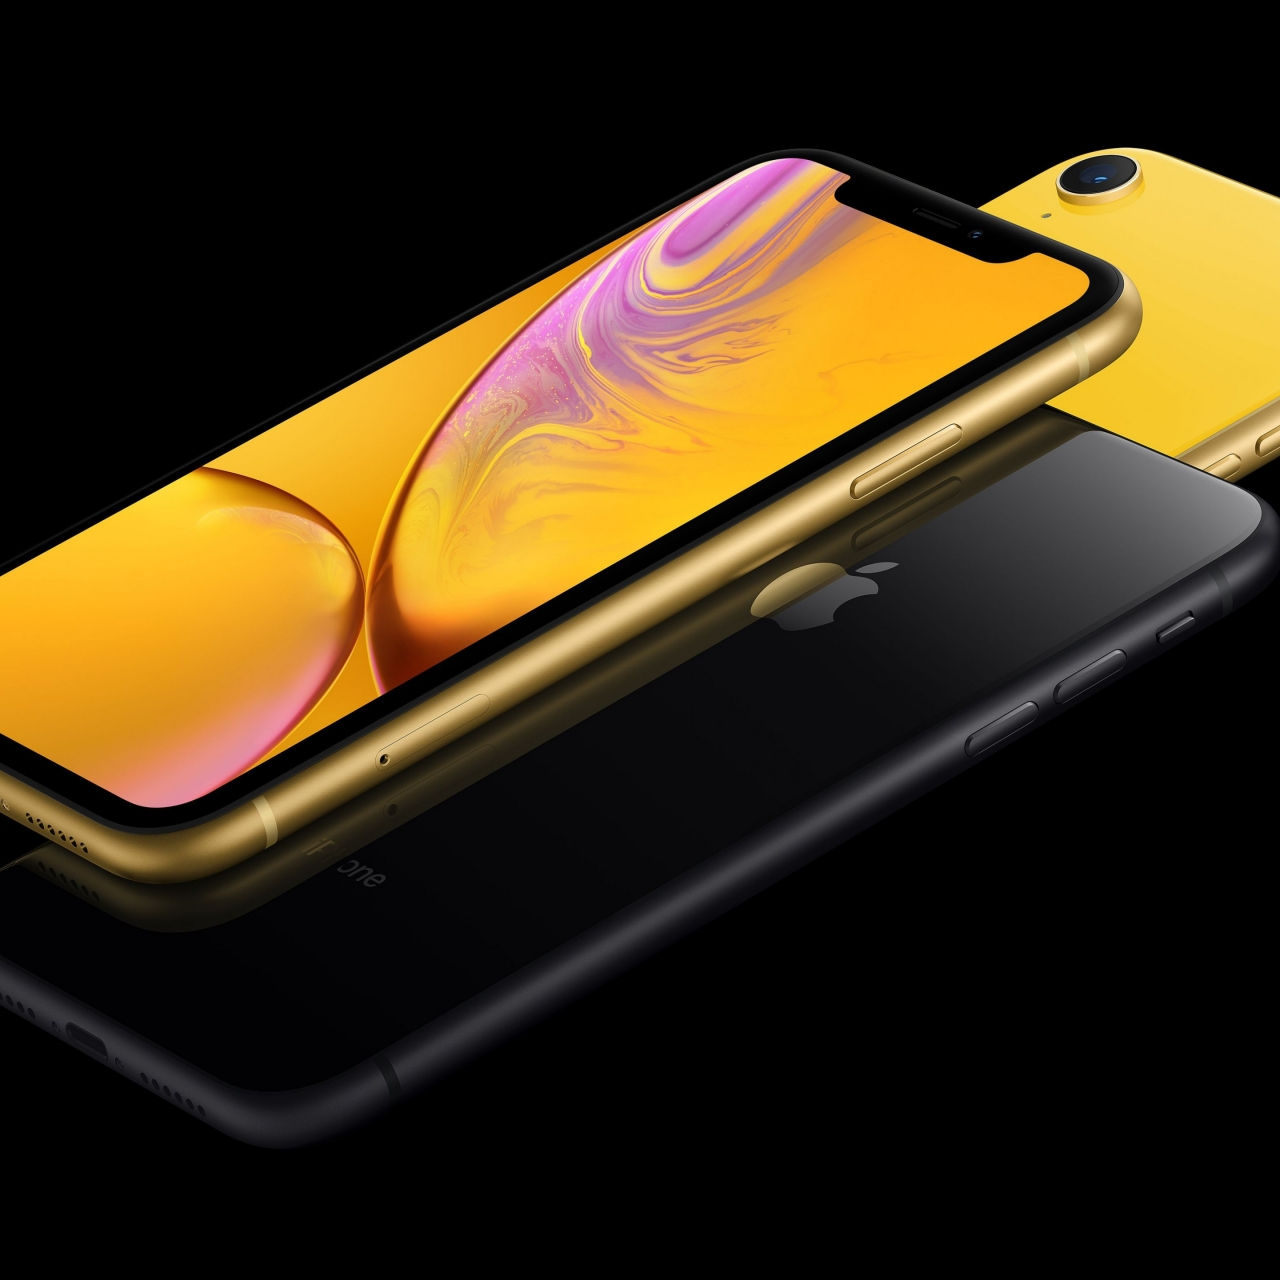 Cool Live Wallpapers Iphone Xr